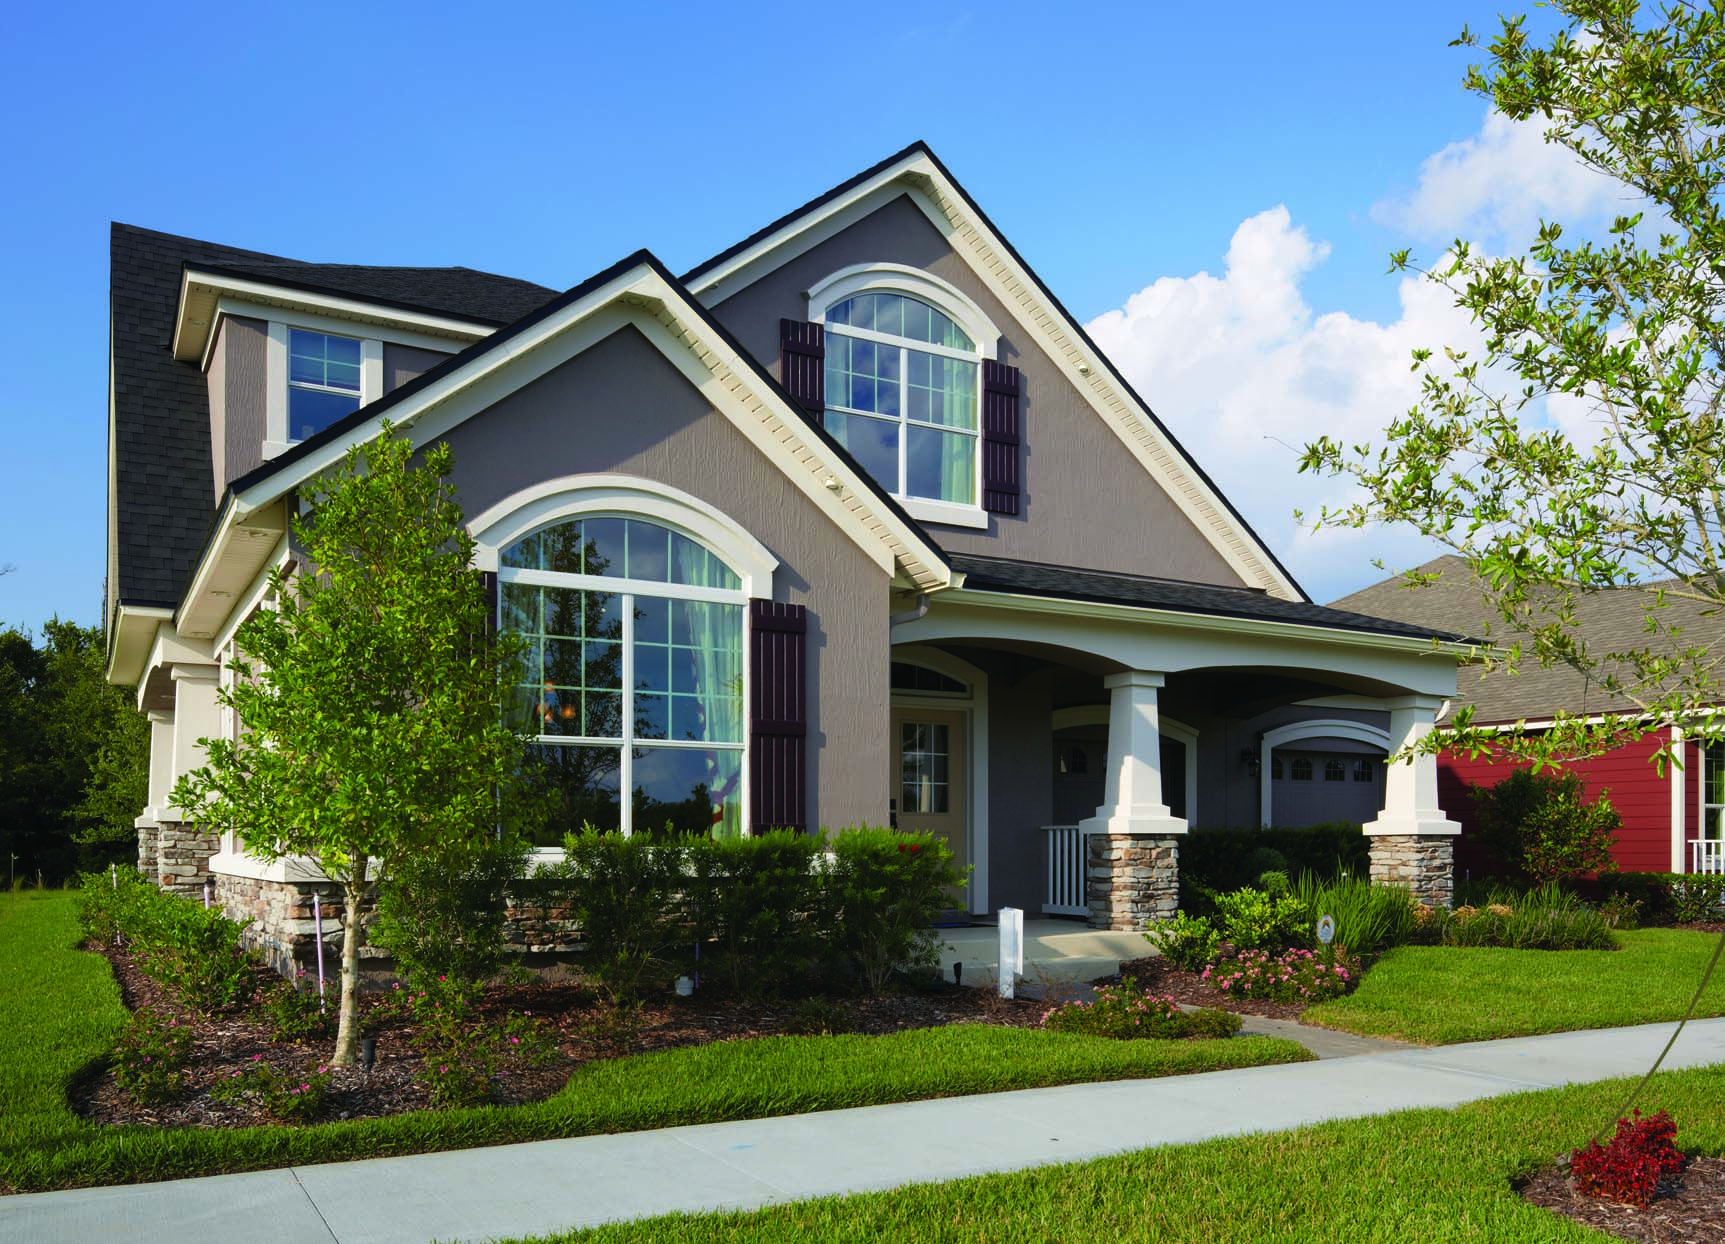 Our periwinkle model in rivertown mattamy jacksonville for Mattamy homes